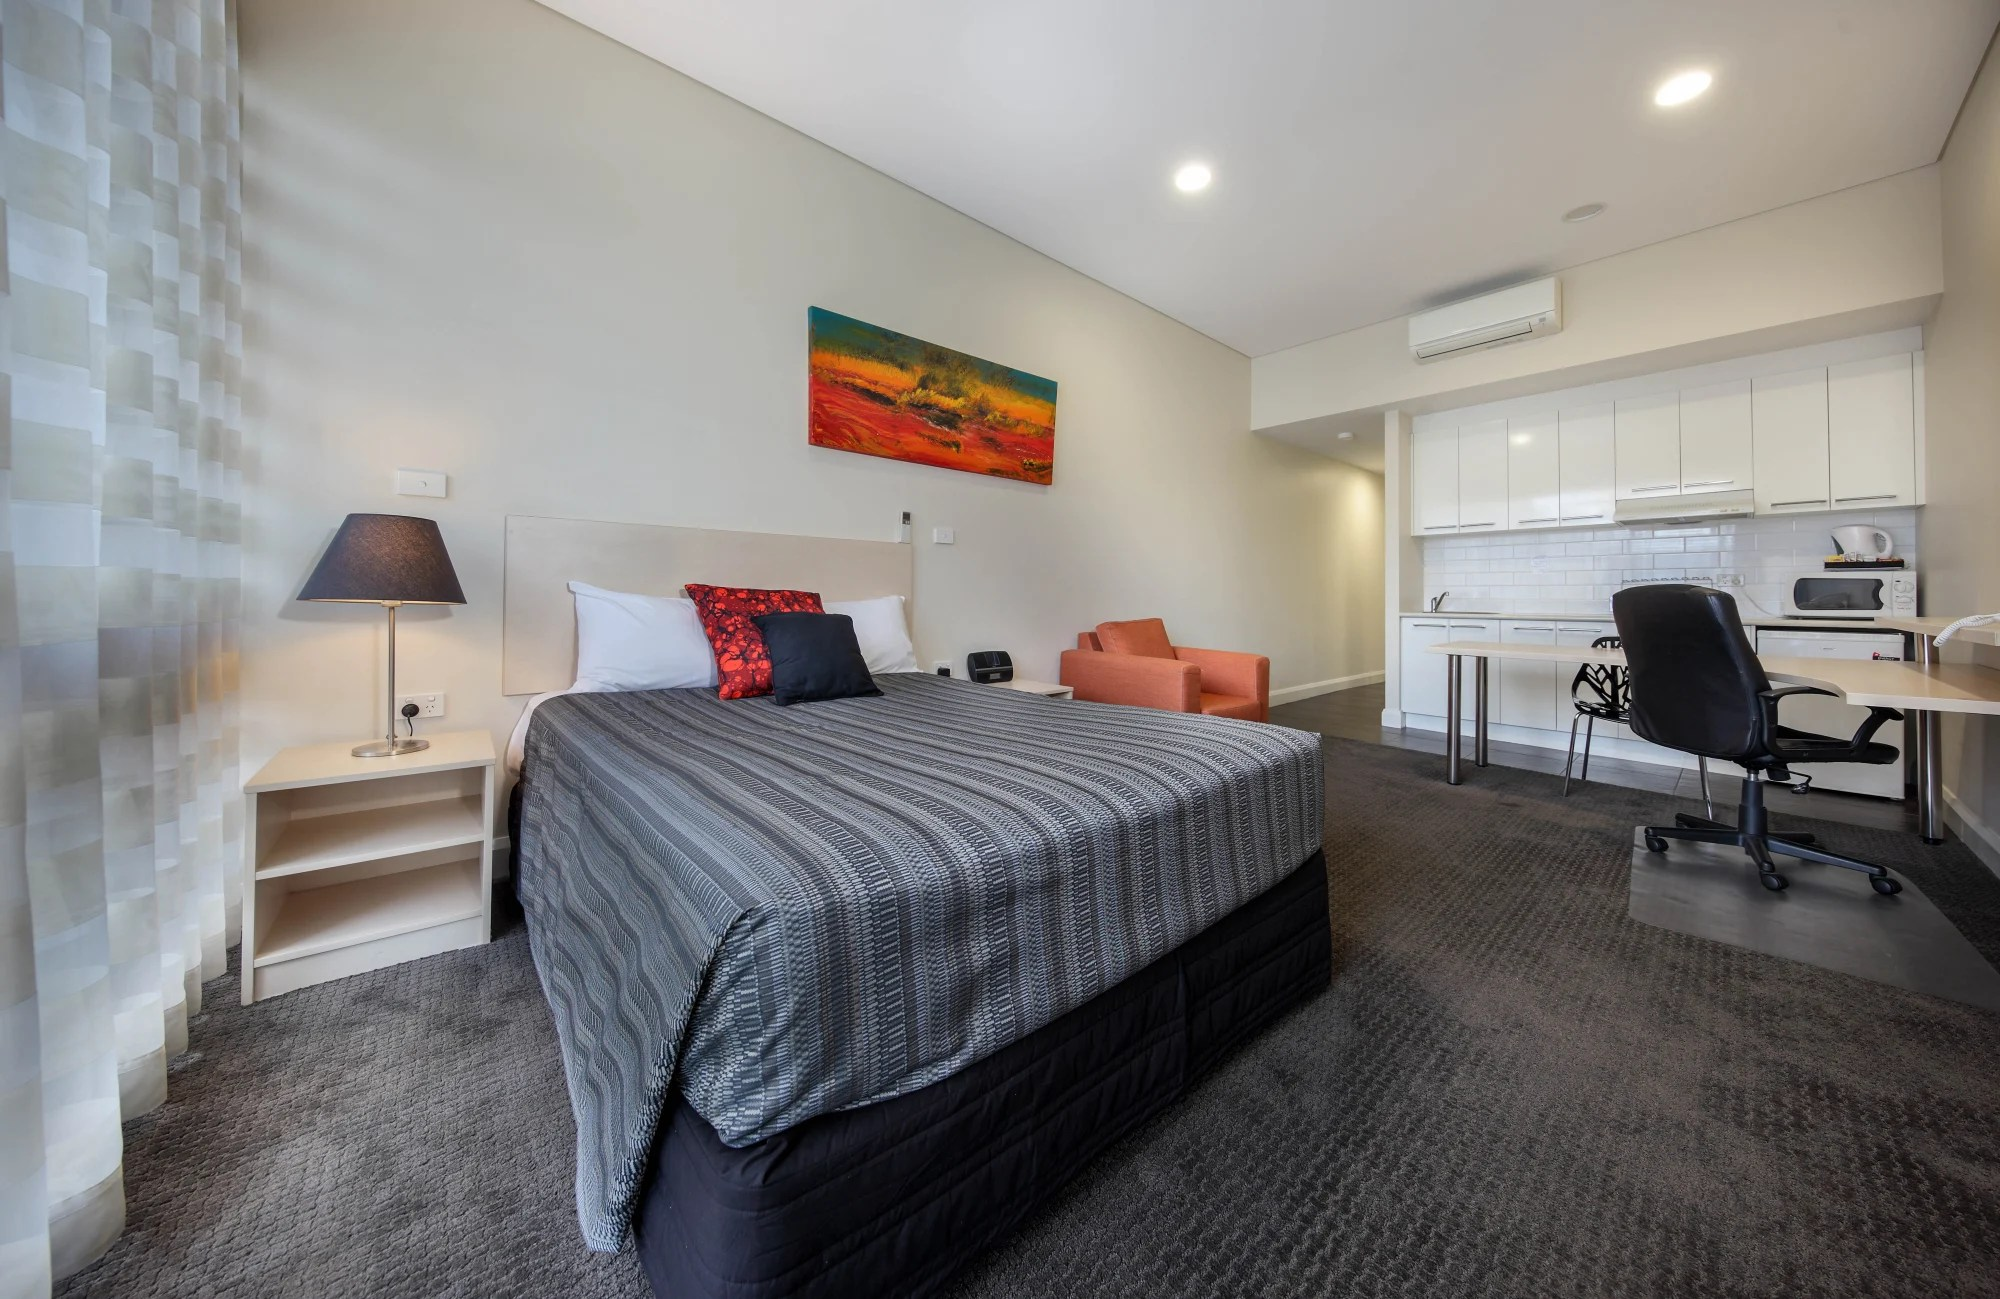 Bedding Stores Canberra Serviced Apartment Belconnen Way Motel And Serviced Apartments